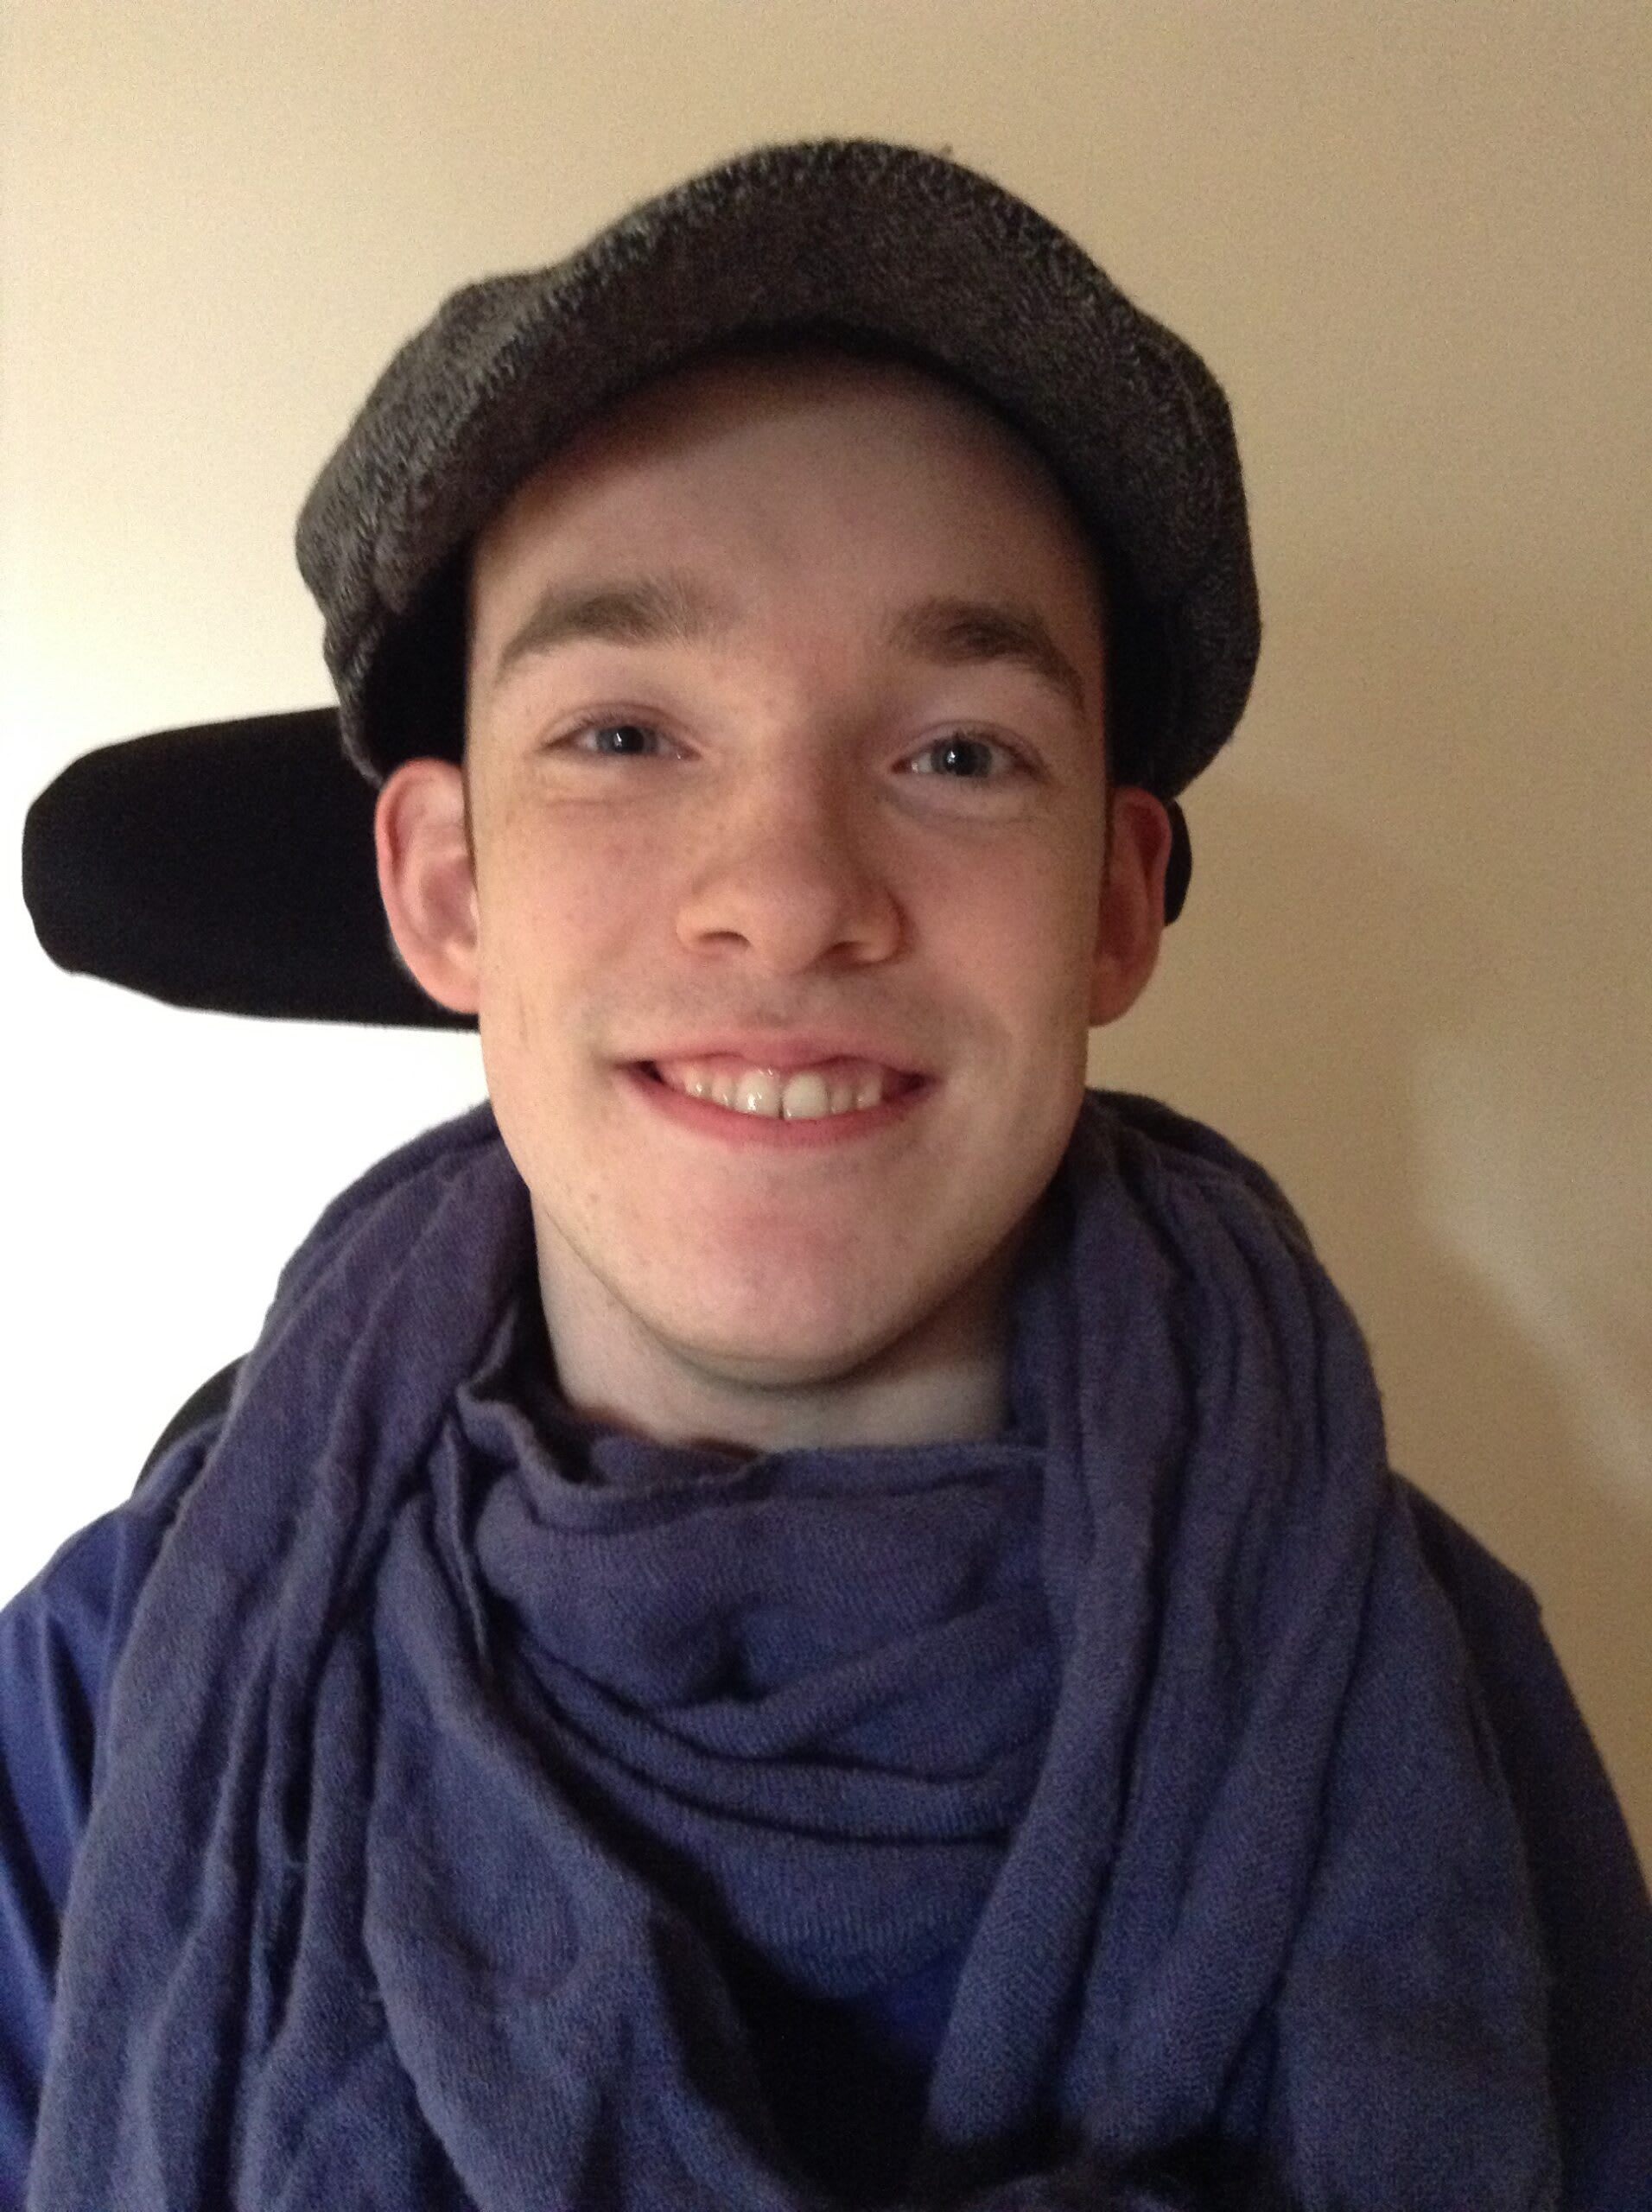 An thumbnail for the post: Read Aidan's story